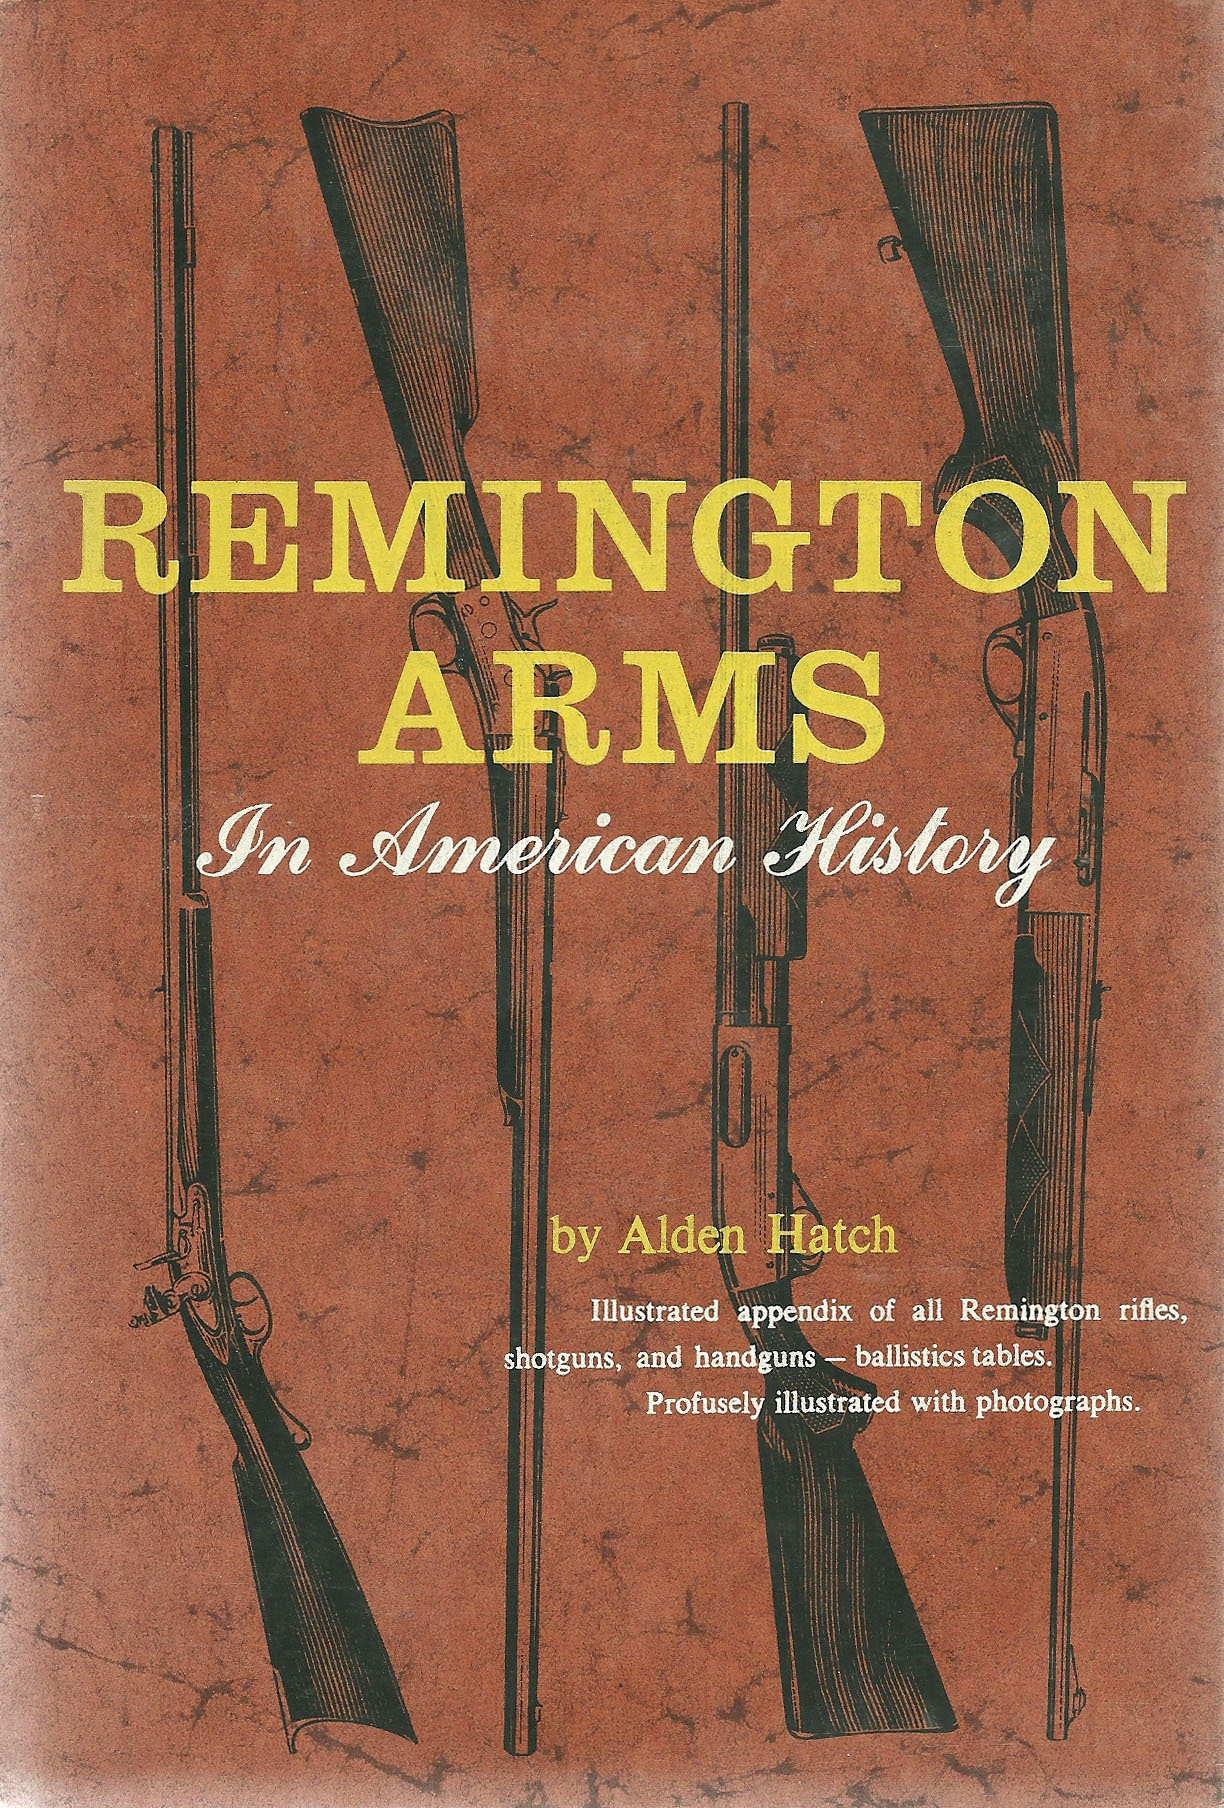 Photo of Remington Arms - Hatch